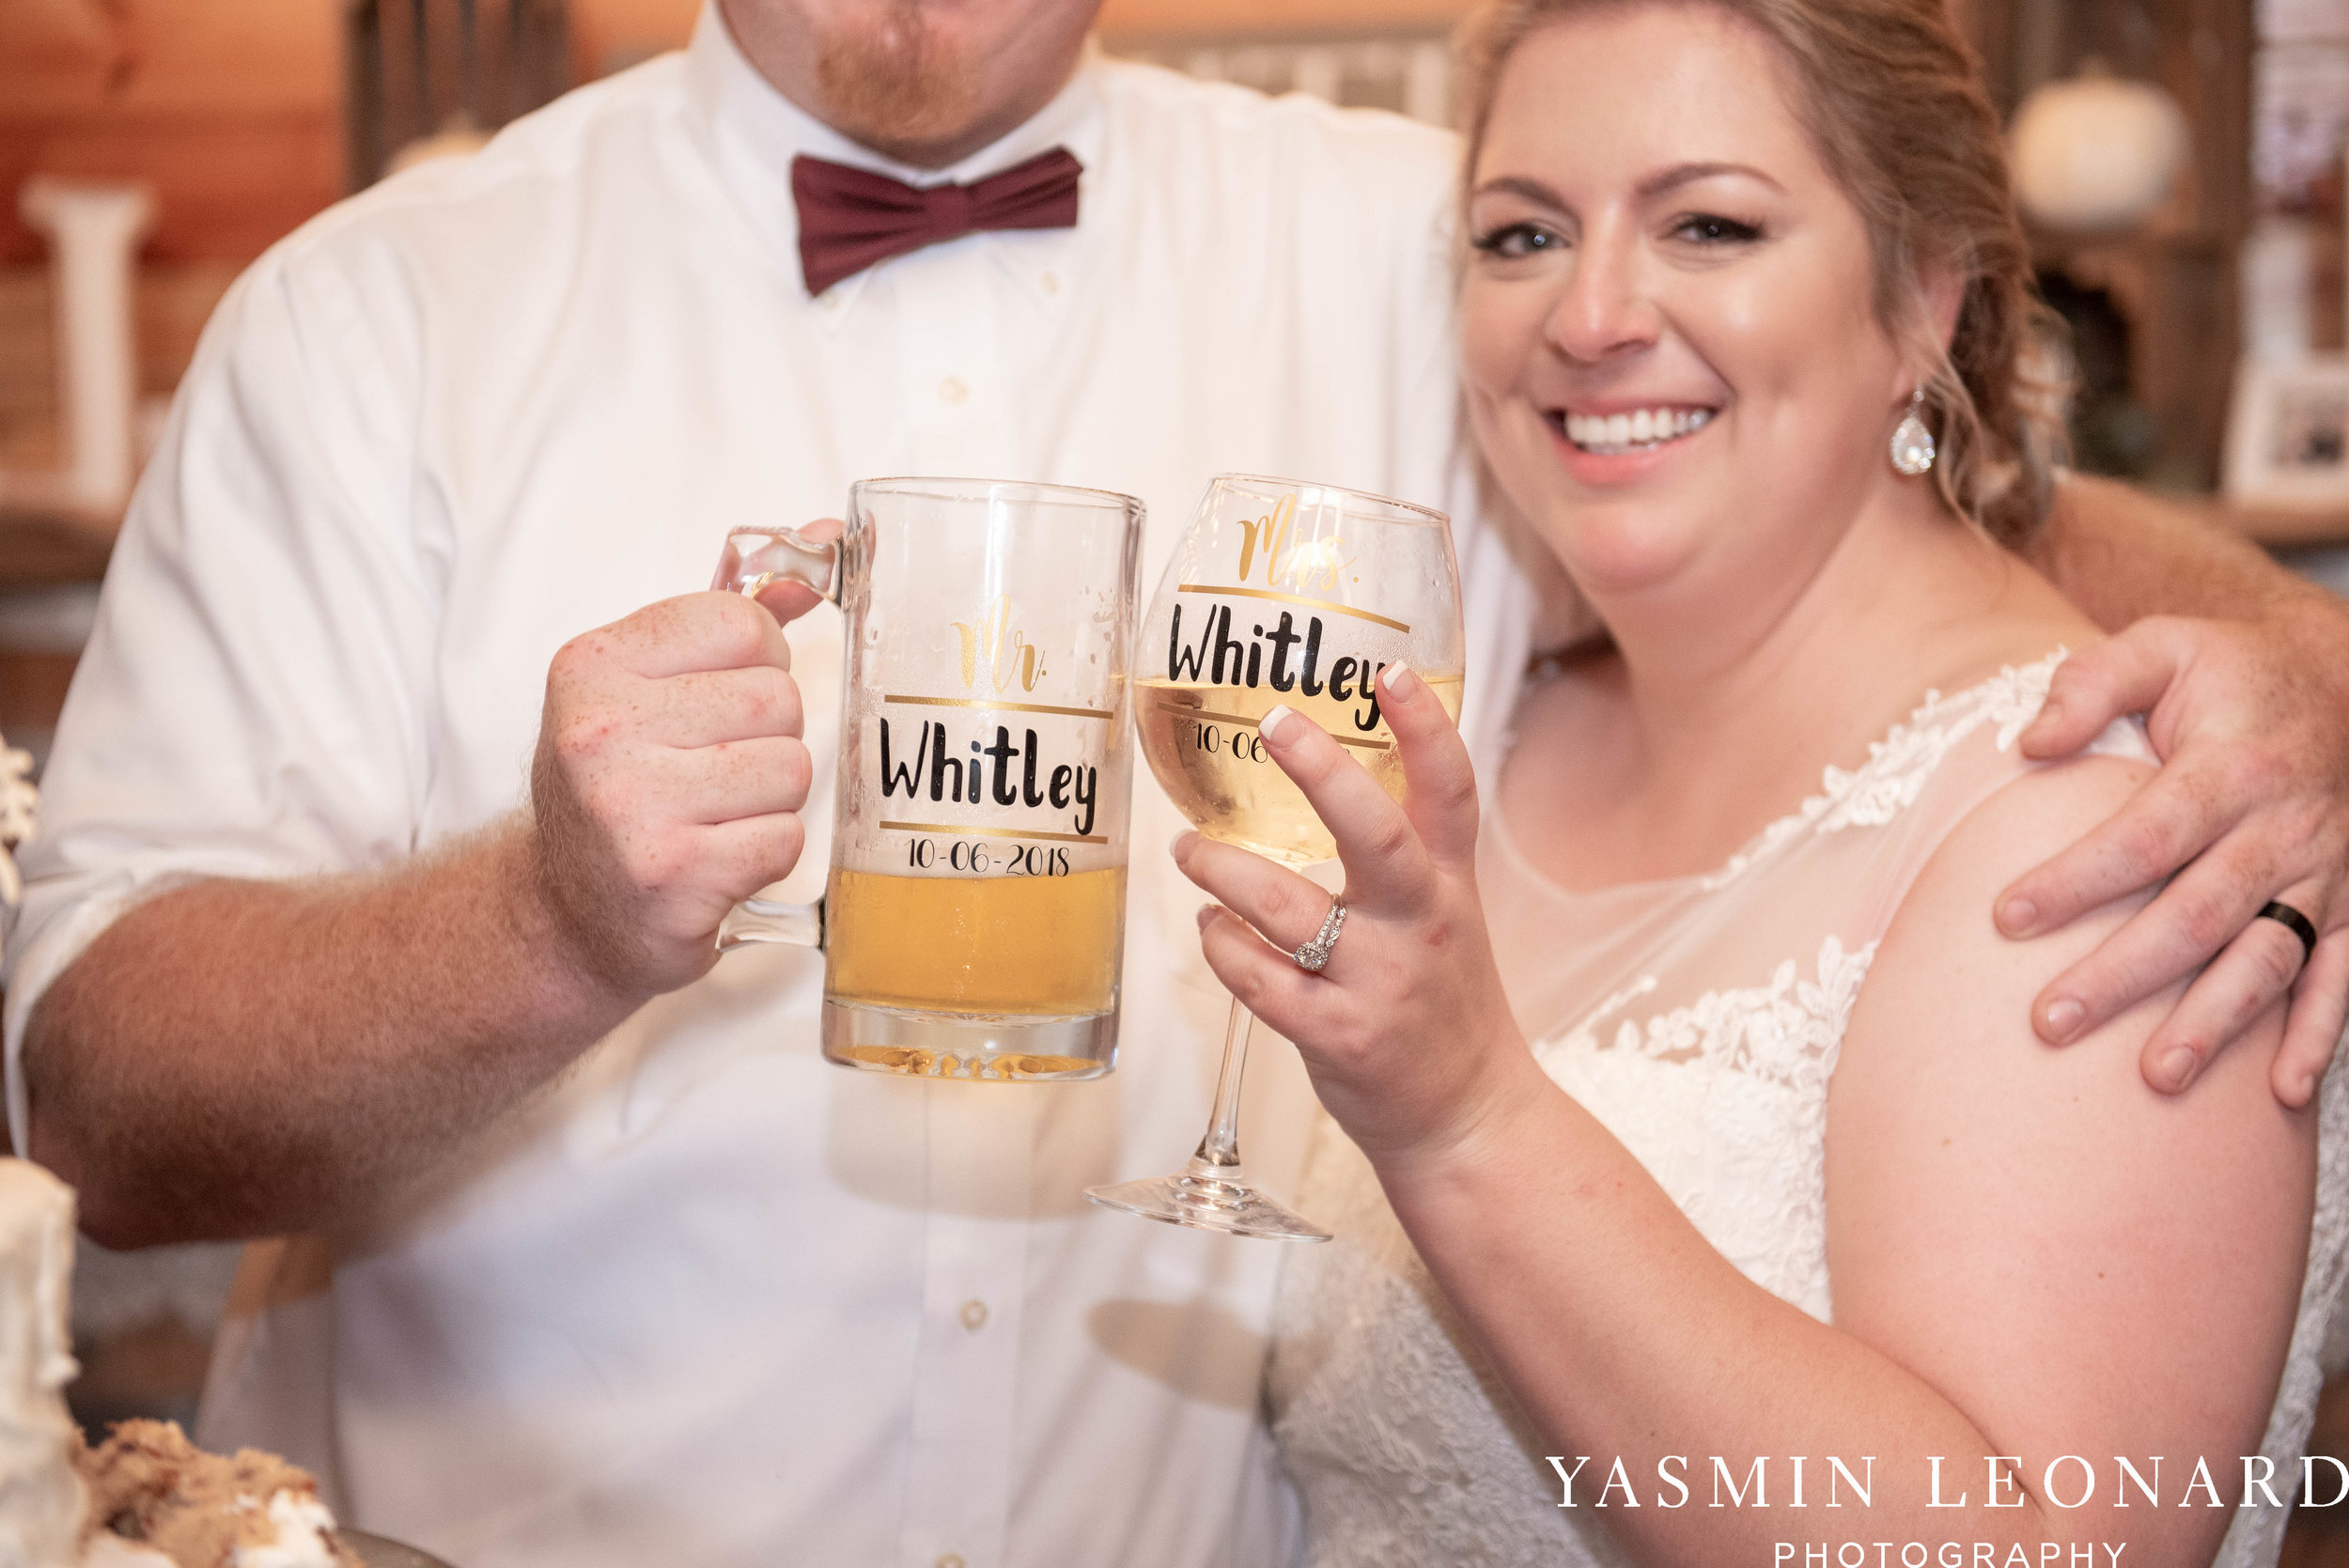 Danner Farms - NC Wedding Venues - NC Barns - Statesville NC - NC Wedding Photographer - High Point Wedding Photographer - Yasmin Leonard Photography-77.jpg